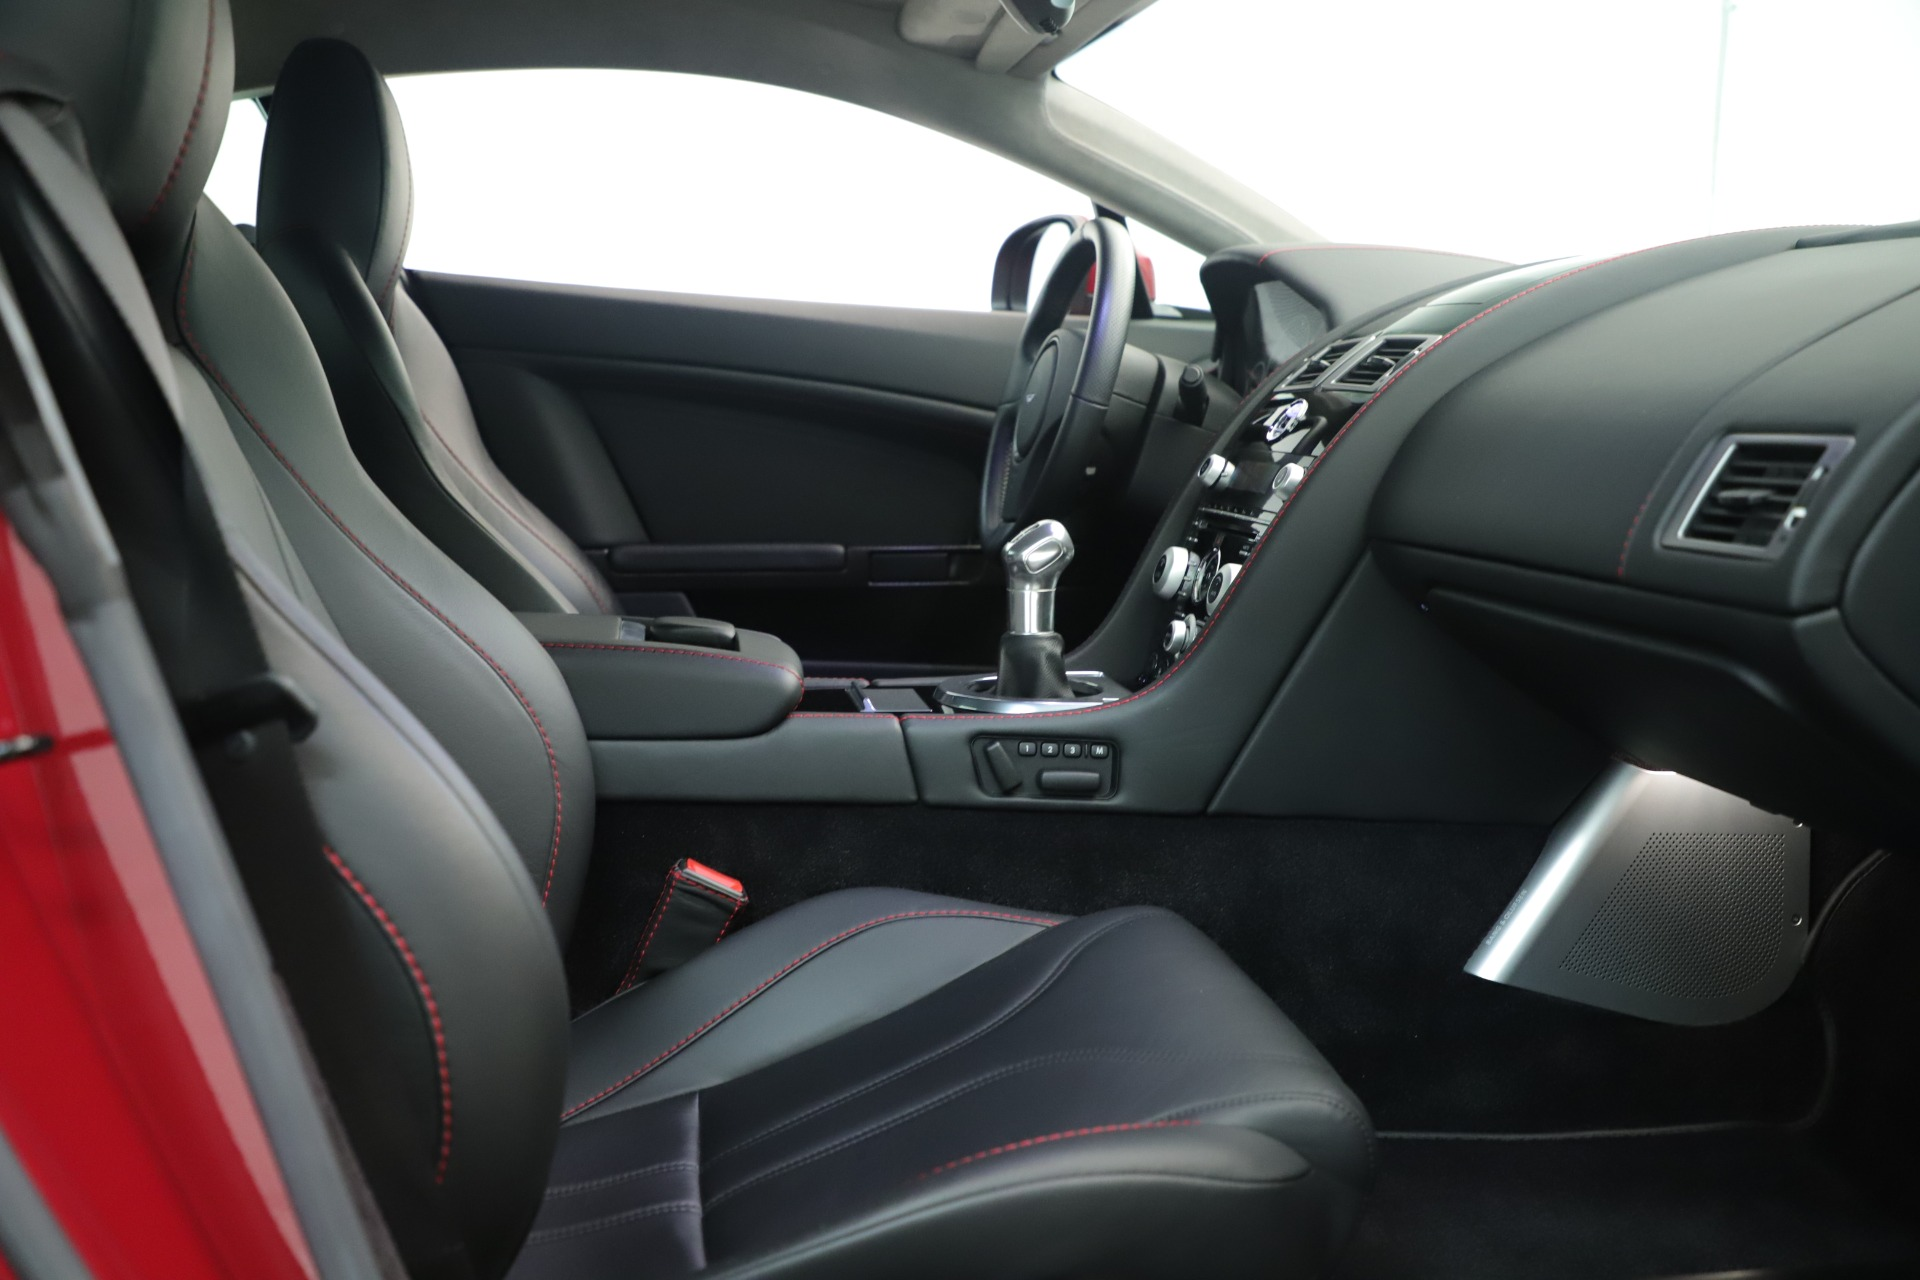 Used 2011 Aston Martin V12 Vantage Coupe For Sale In Westport, CT 3395_p27